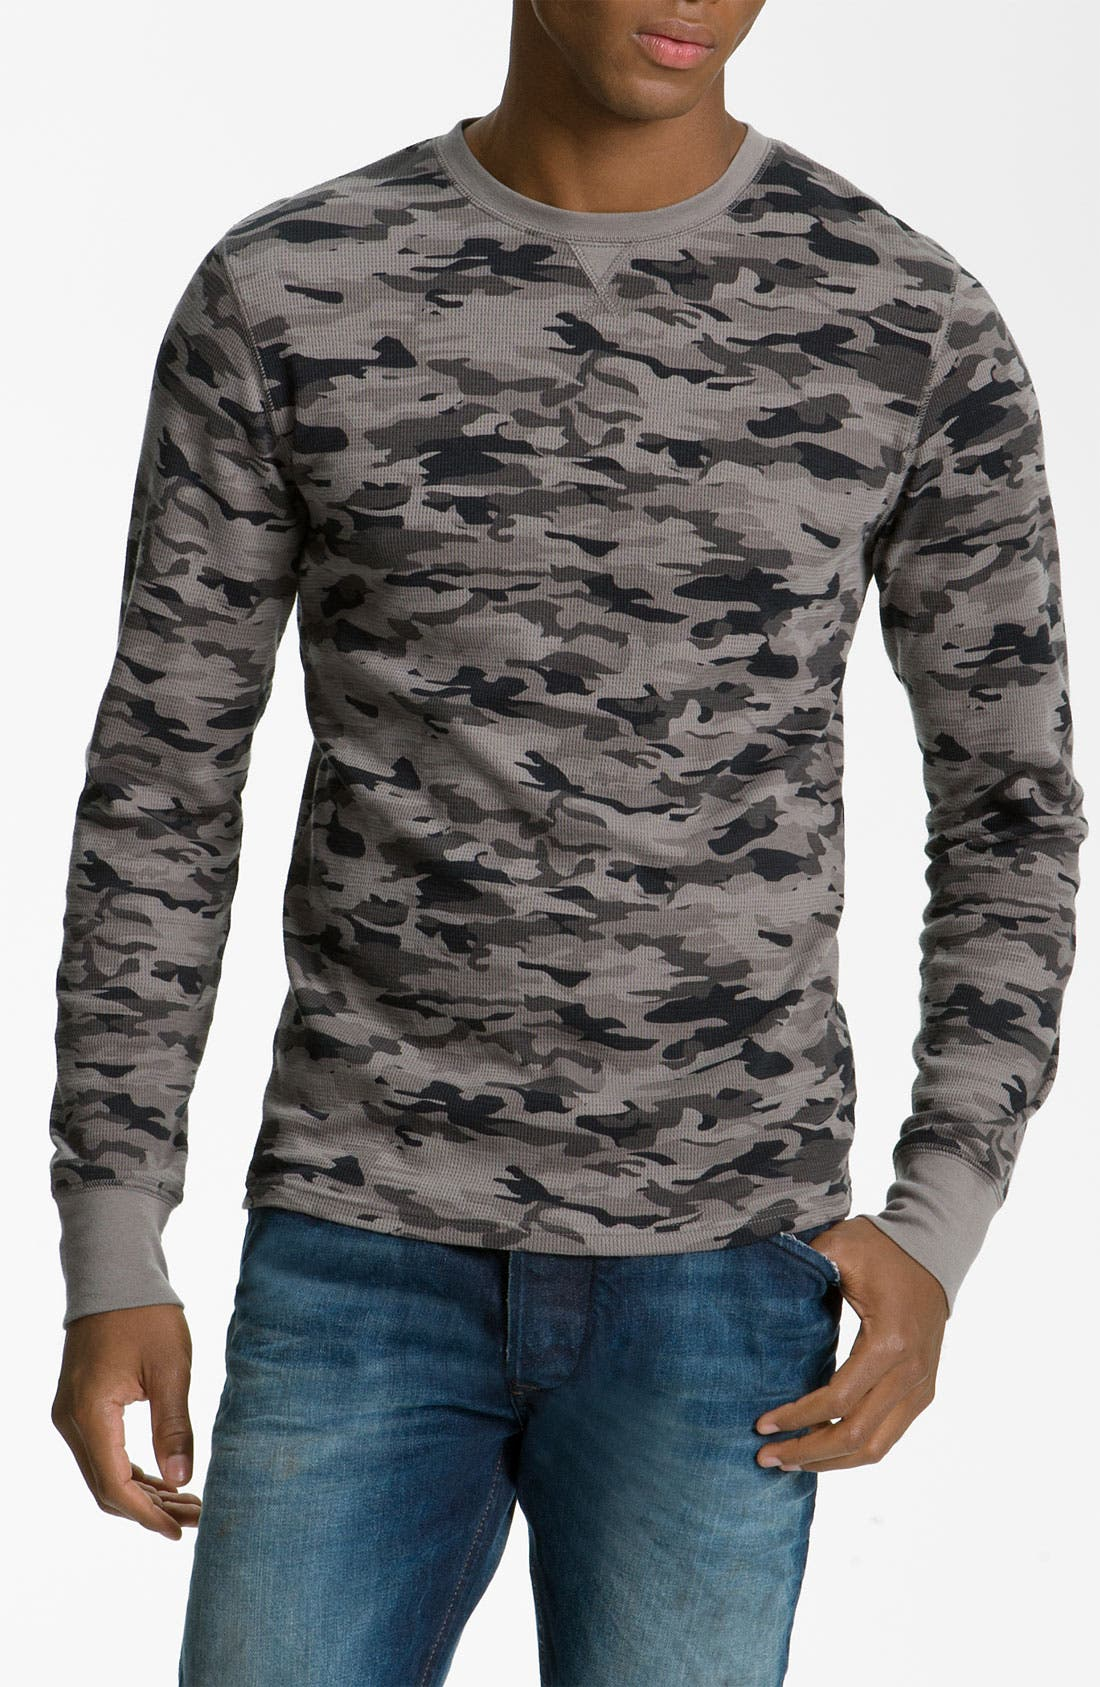 The Rail by Public Opinion Camo Thermal Shirt,                             Main thumbnail 1, color,                             001